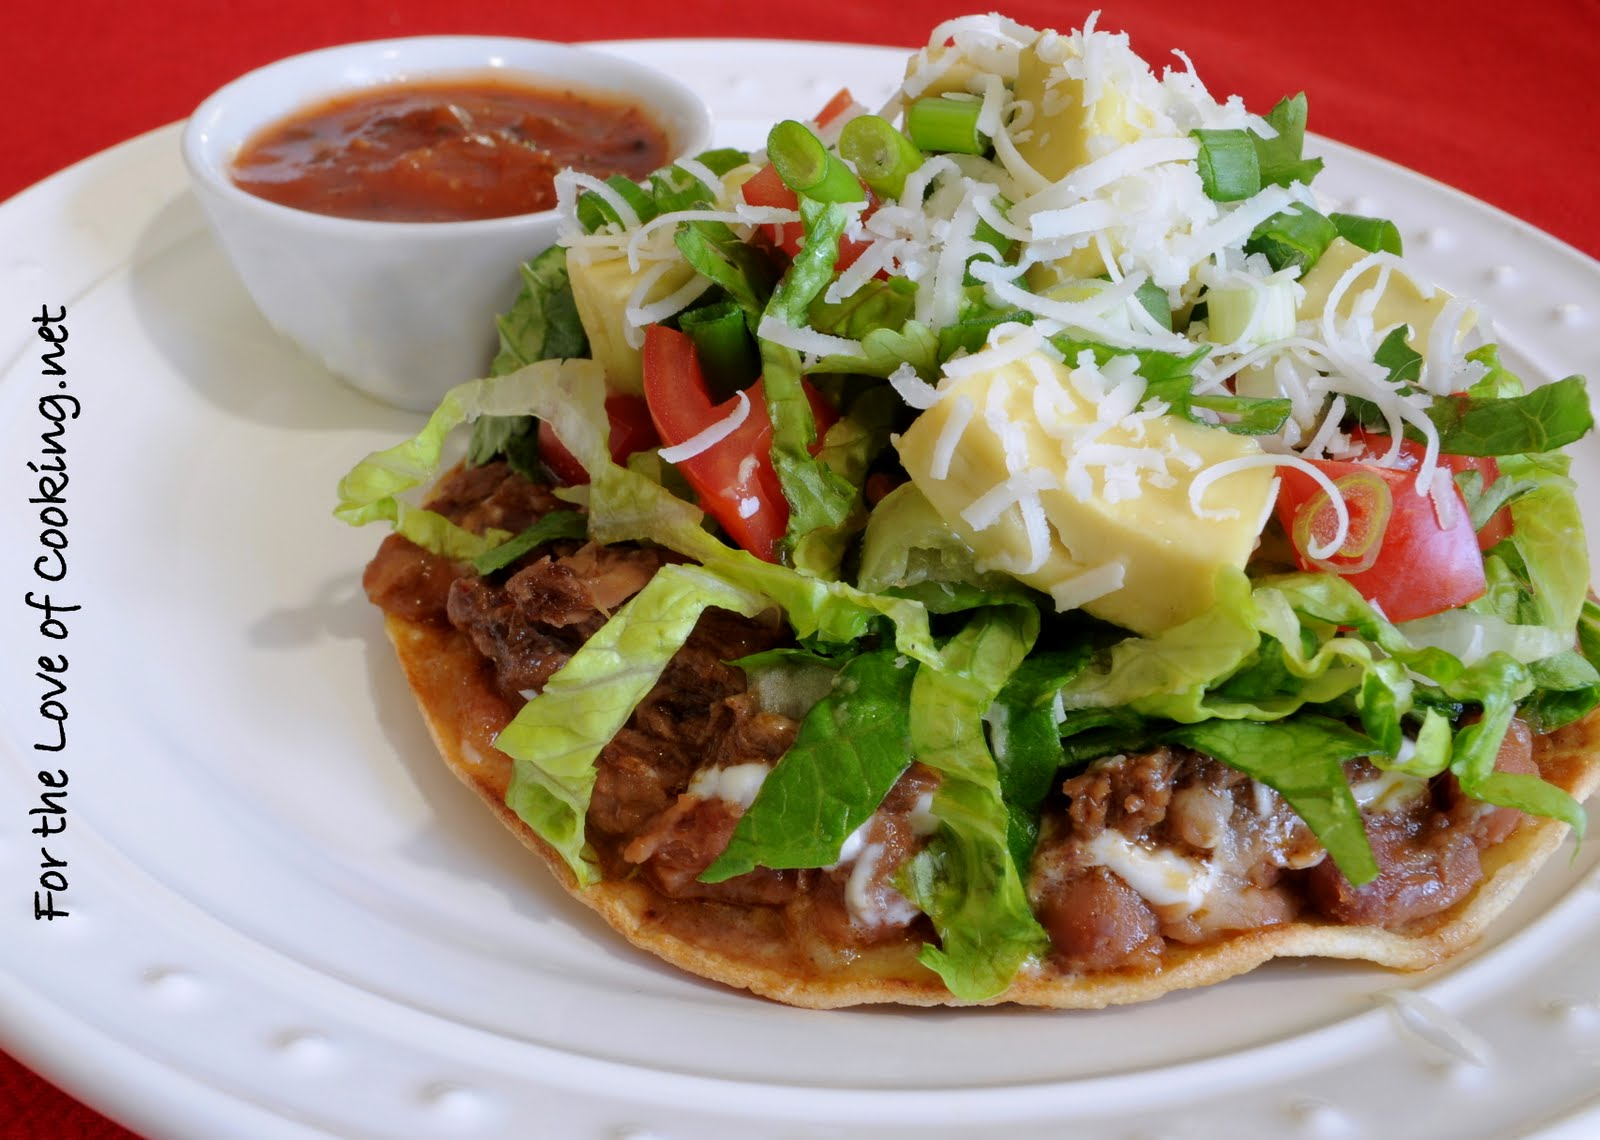 Shredded Beef and Avocado Tostada | For the Love of Cooking